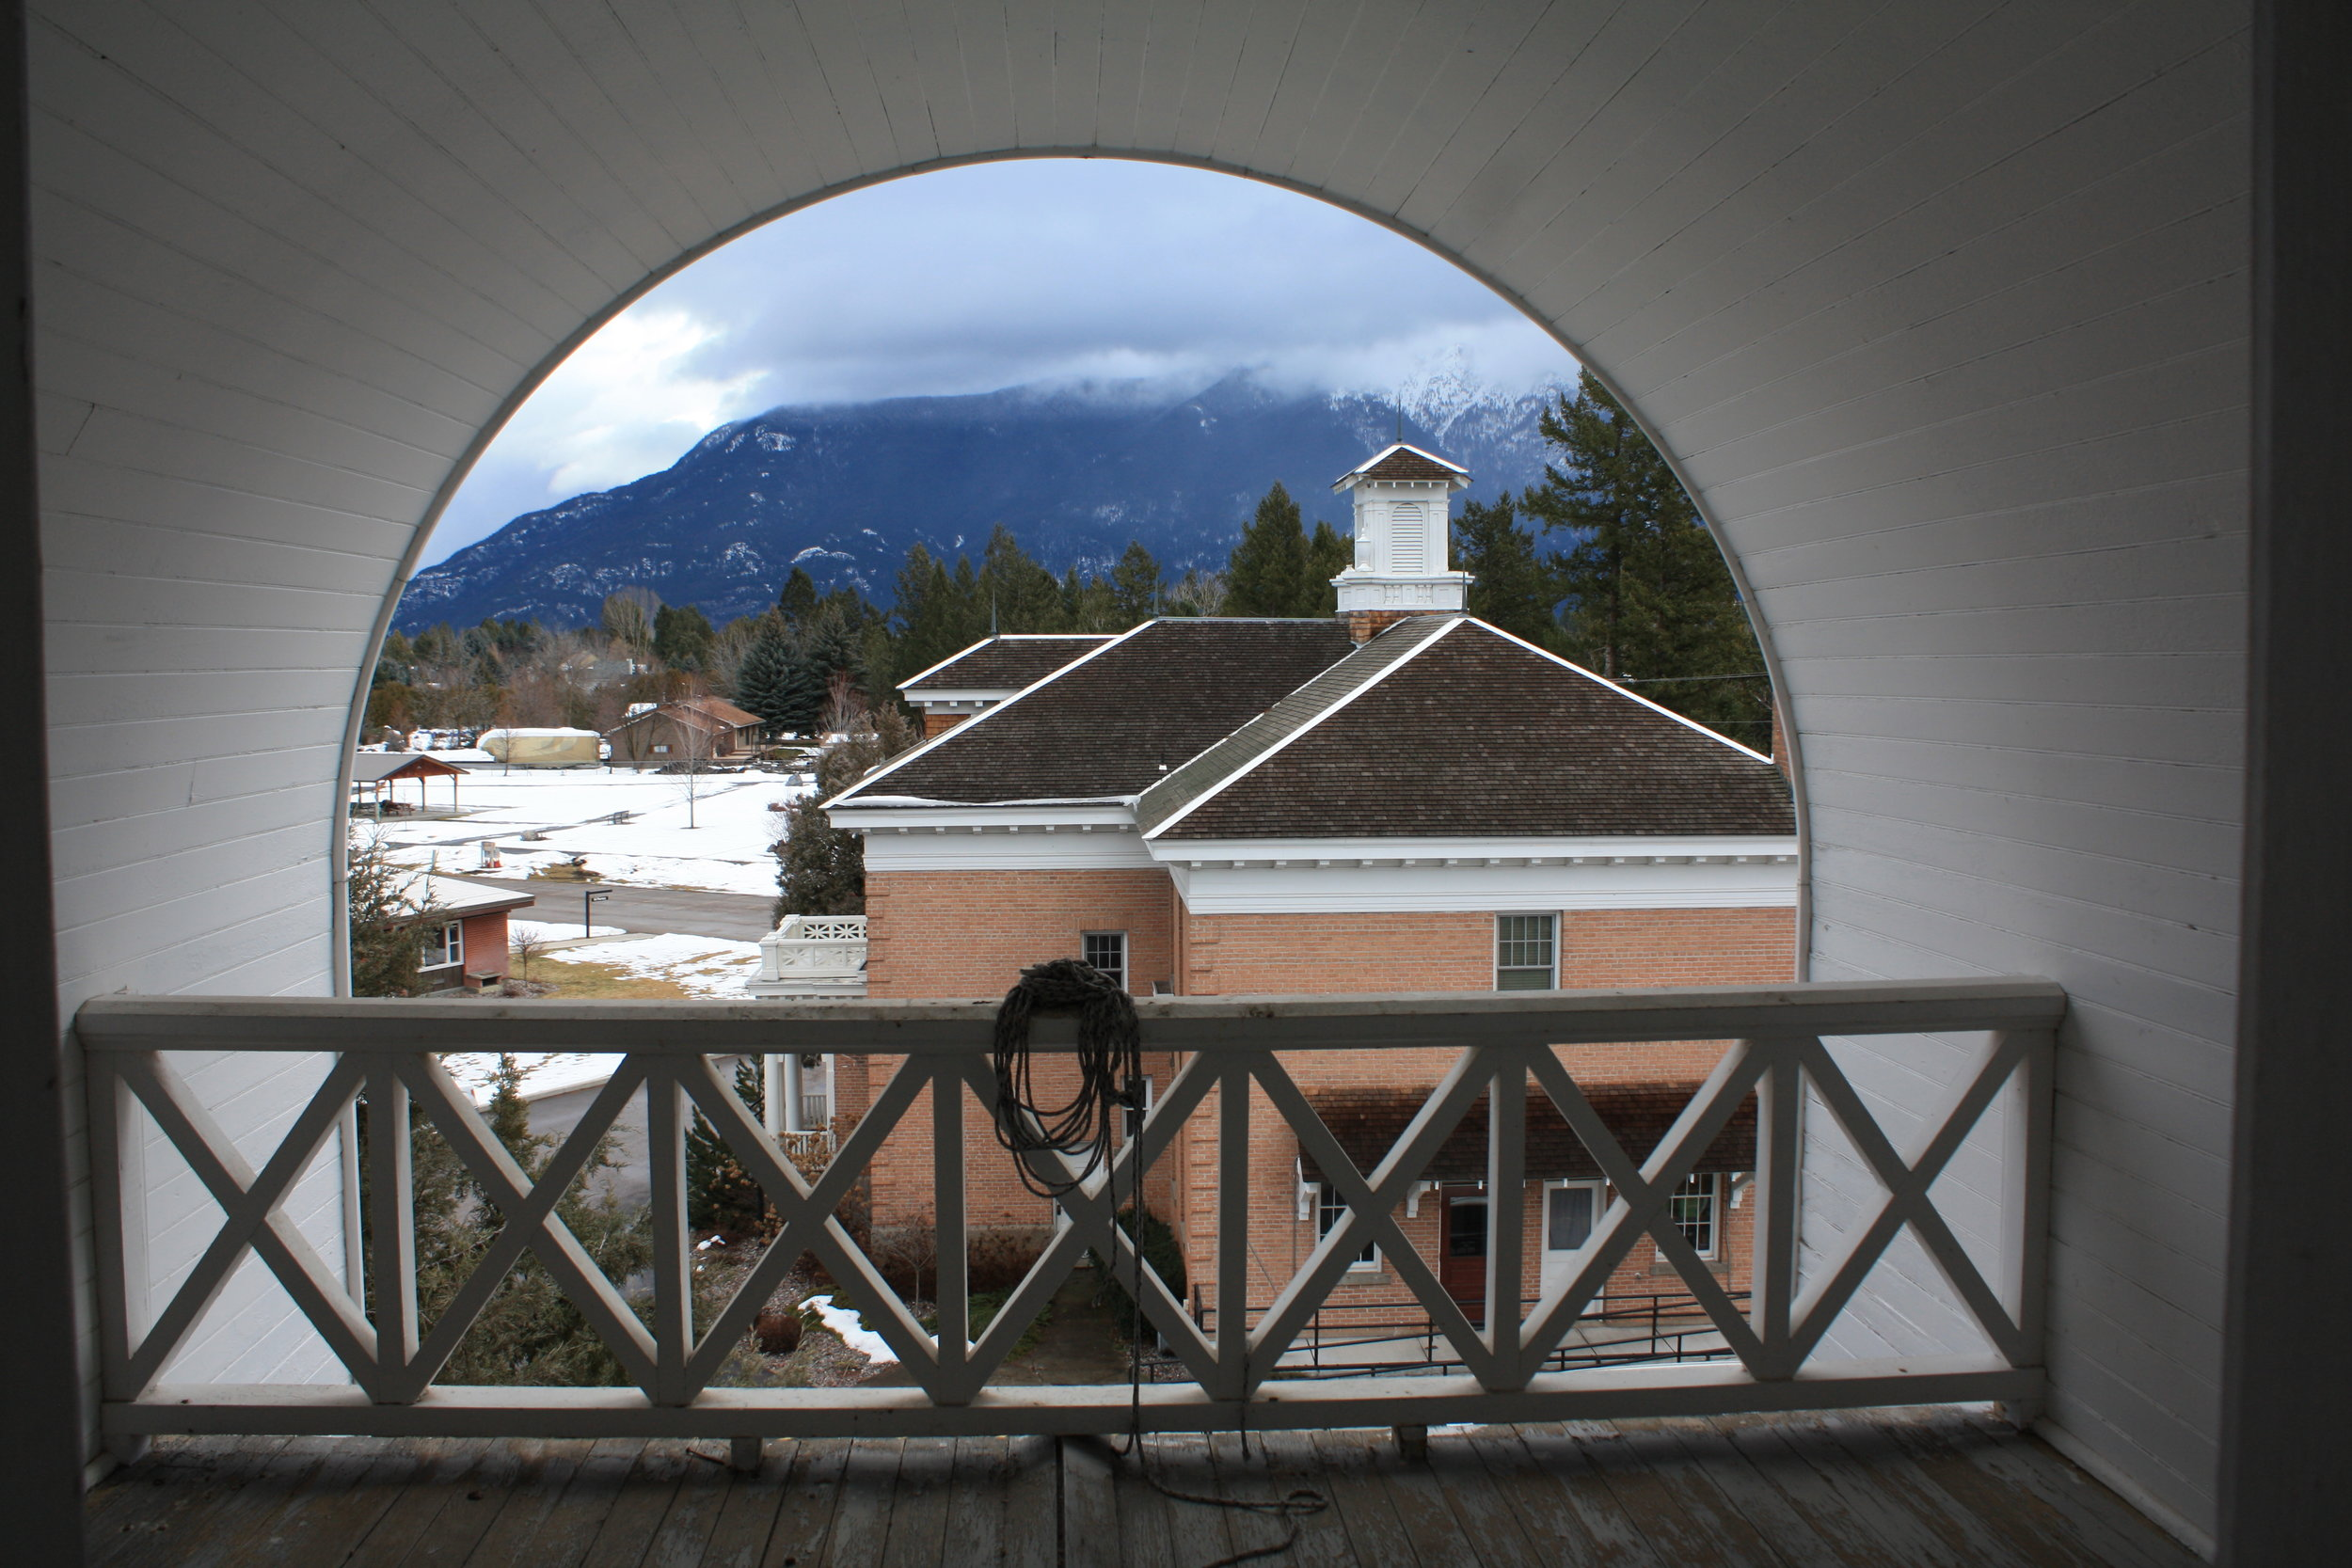 There is an excellent view of the mountains and the Flathead River from the Crow's Nest up in the center gable end.